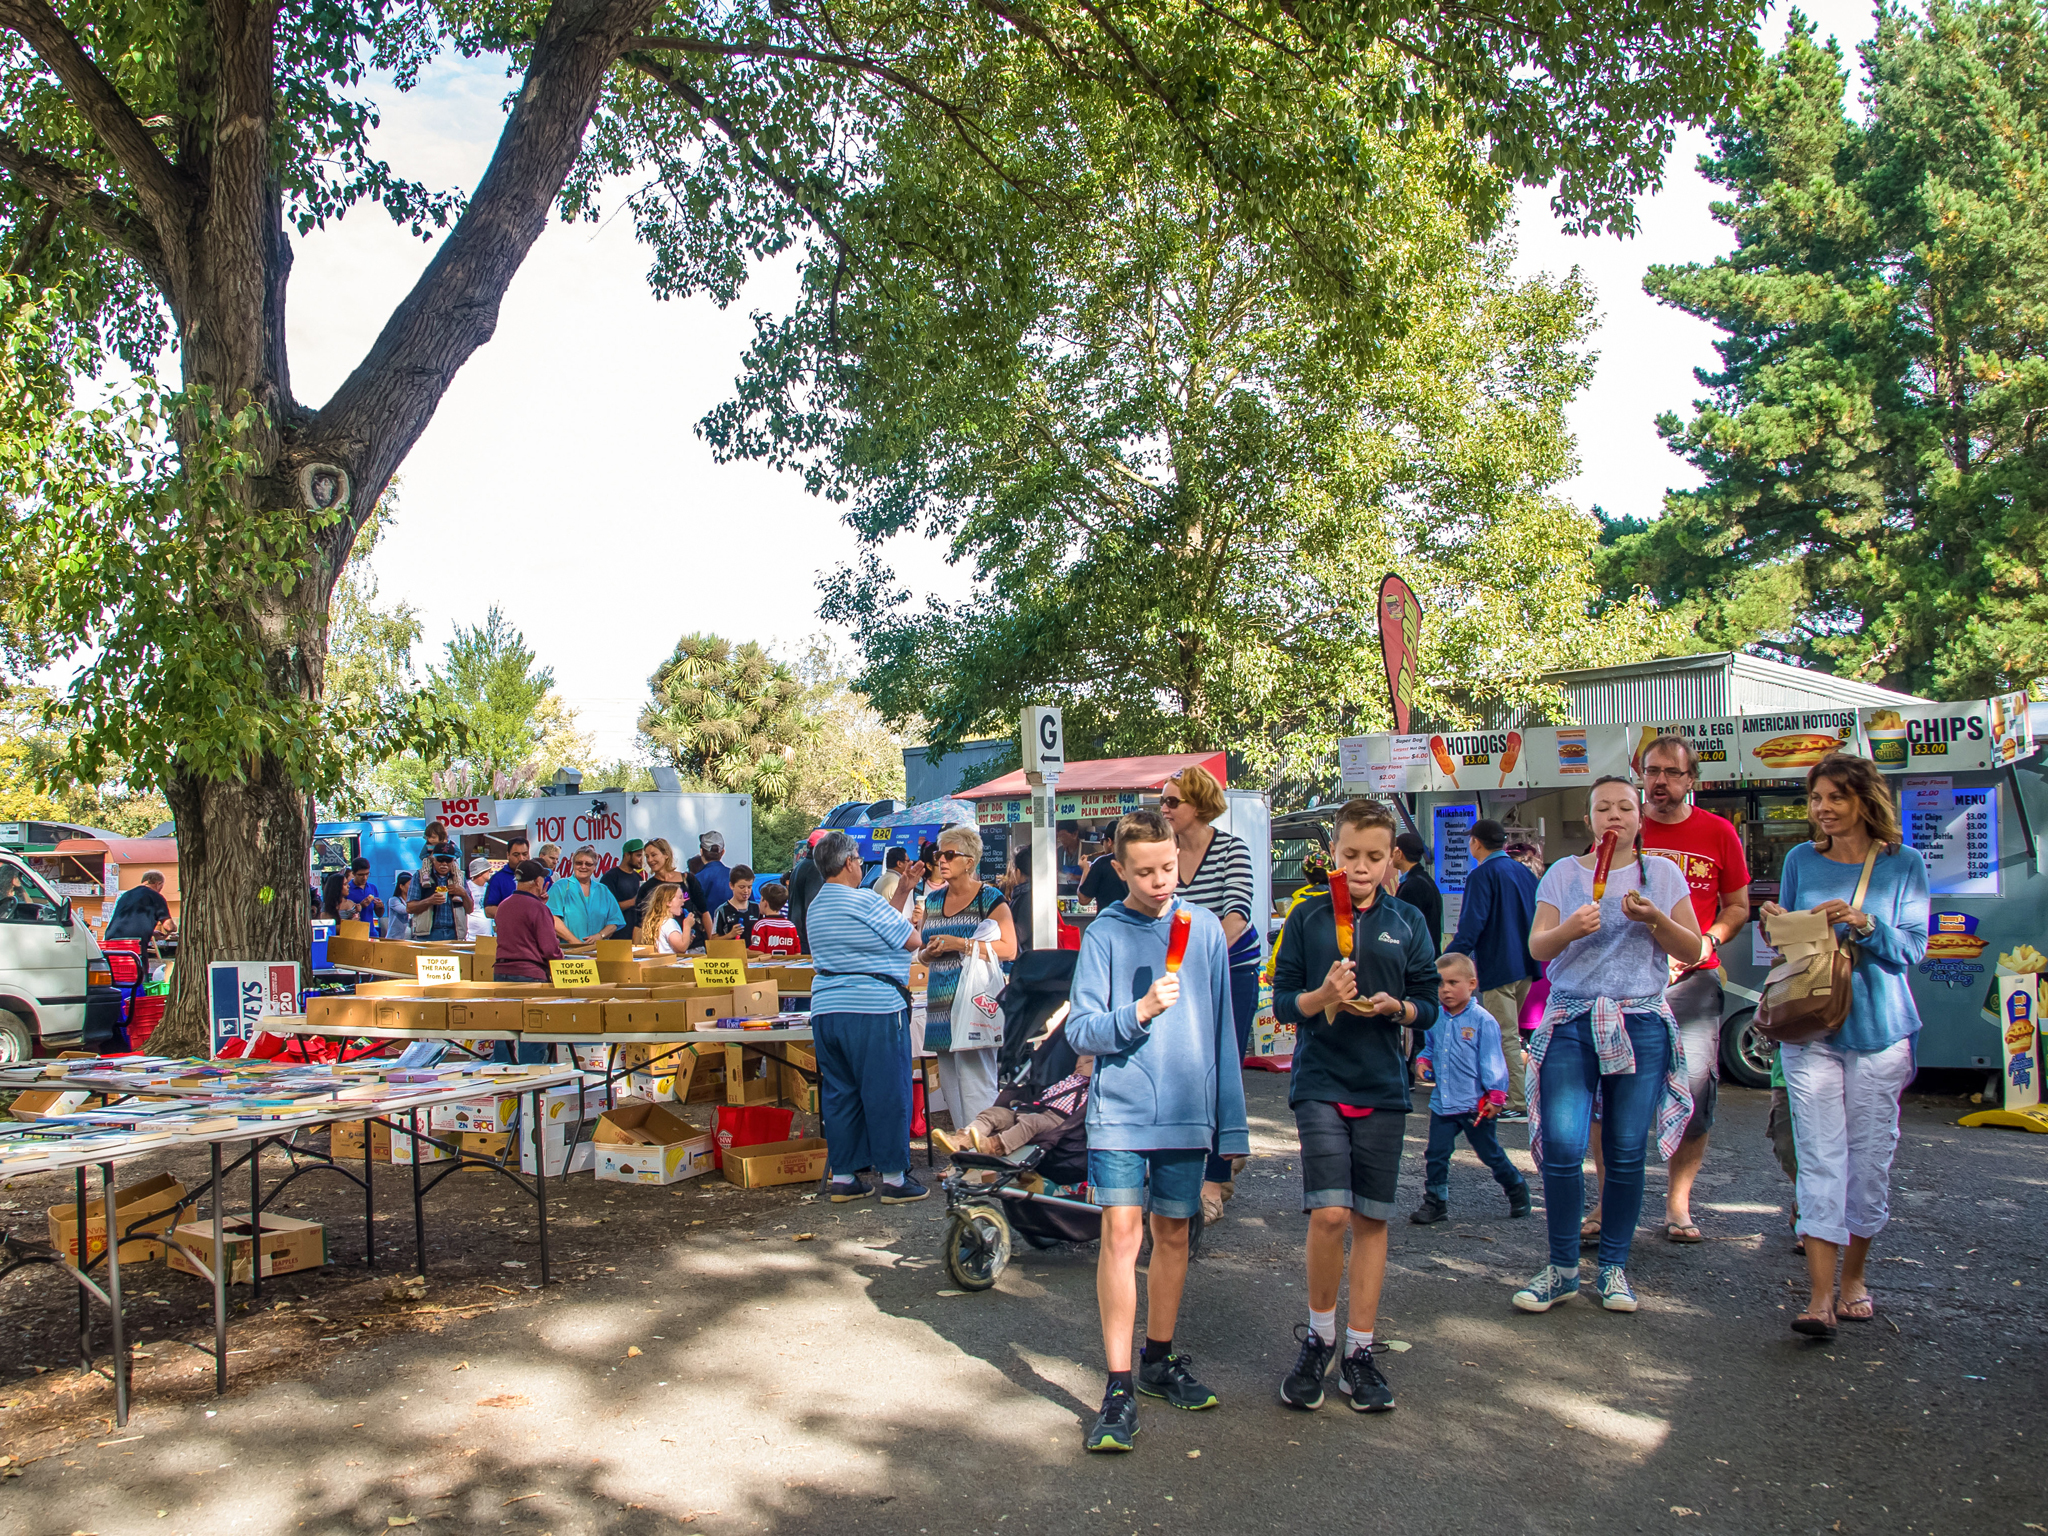 Riccarton Sunday Market, things to do in Christchurch, New Zealand